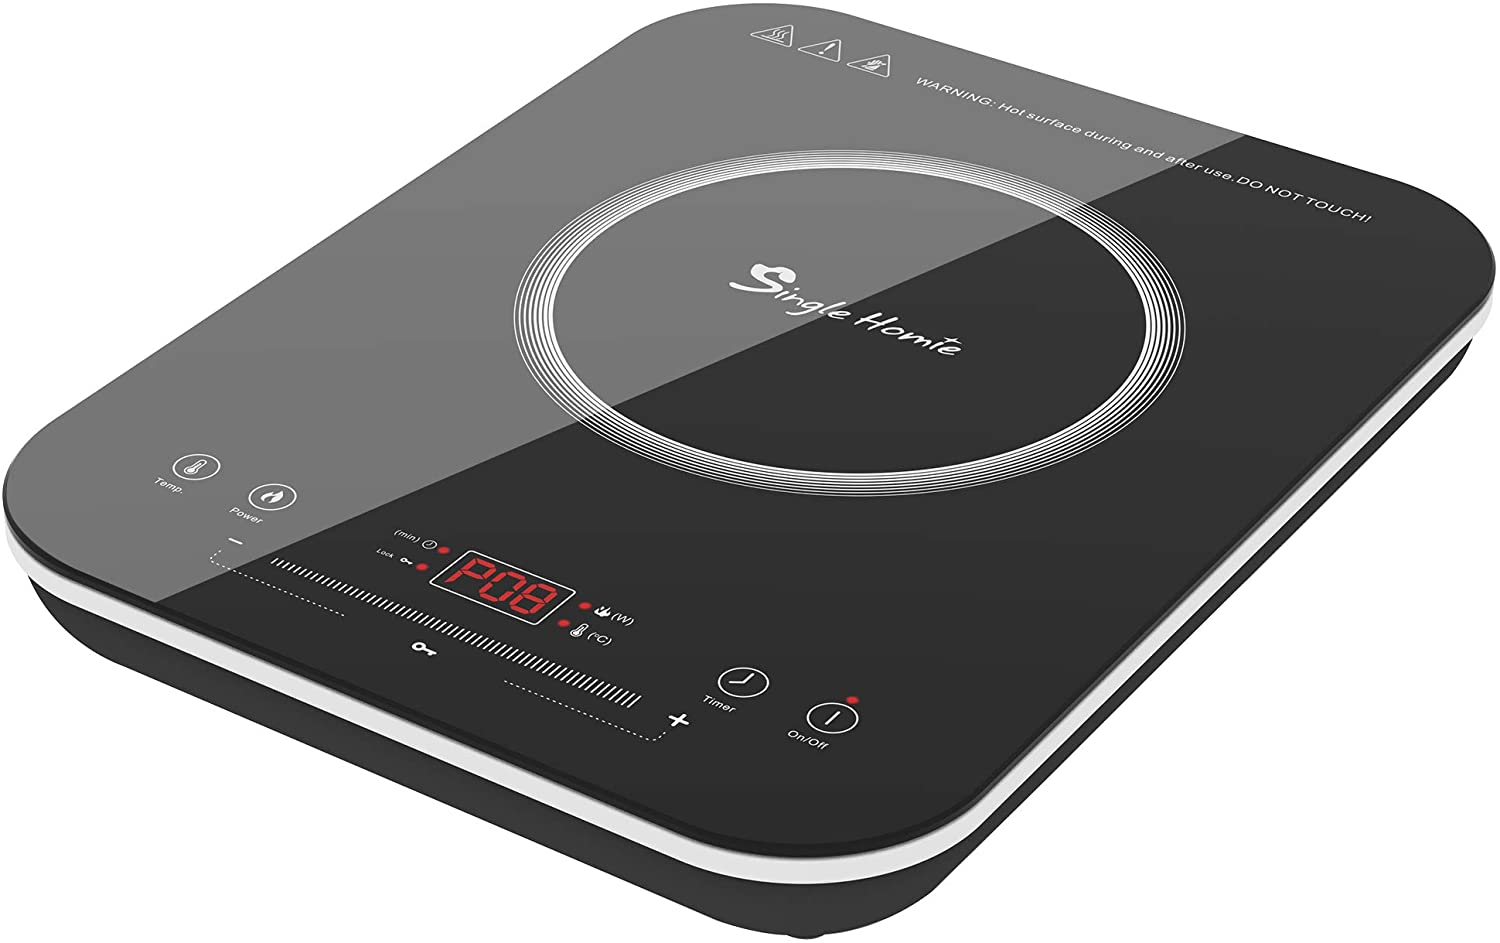 "12"" Portable Induction Cooktop, SINGLEHOMIE1800W Cooker Countertop Burner, Touch Sensor LED Display Plug-in 110-120V / 1800W"